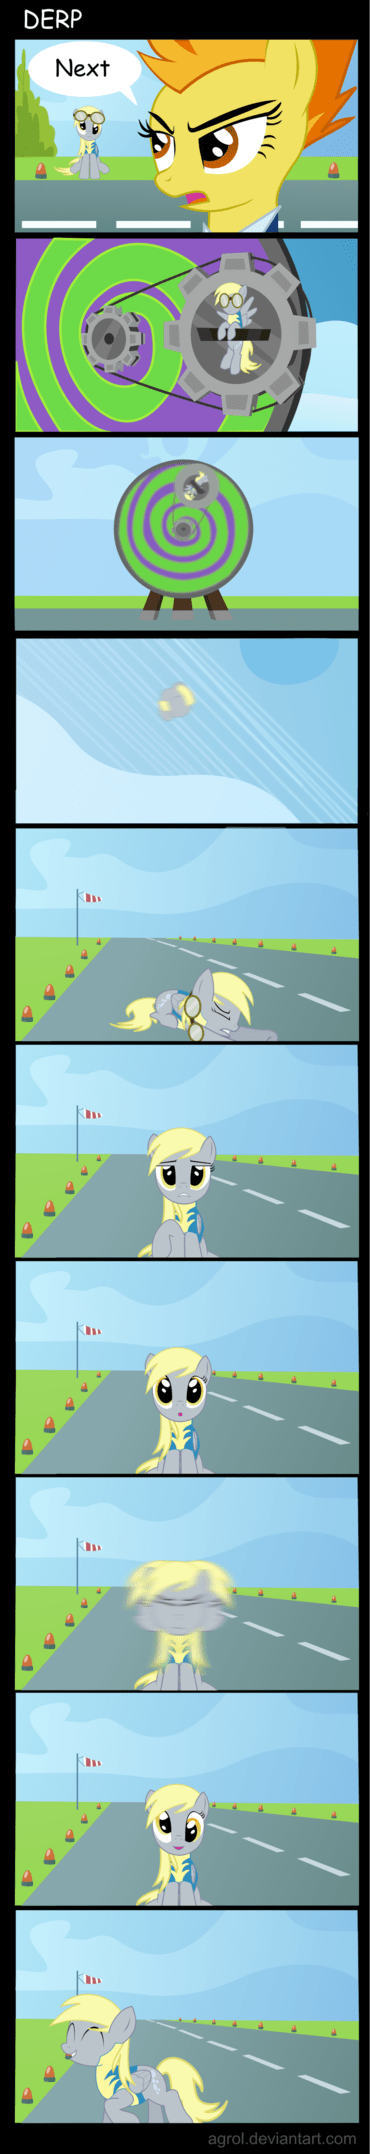 dizzy,derpy hooves,comics,derp